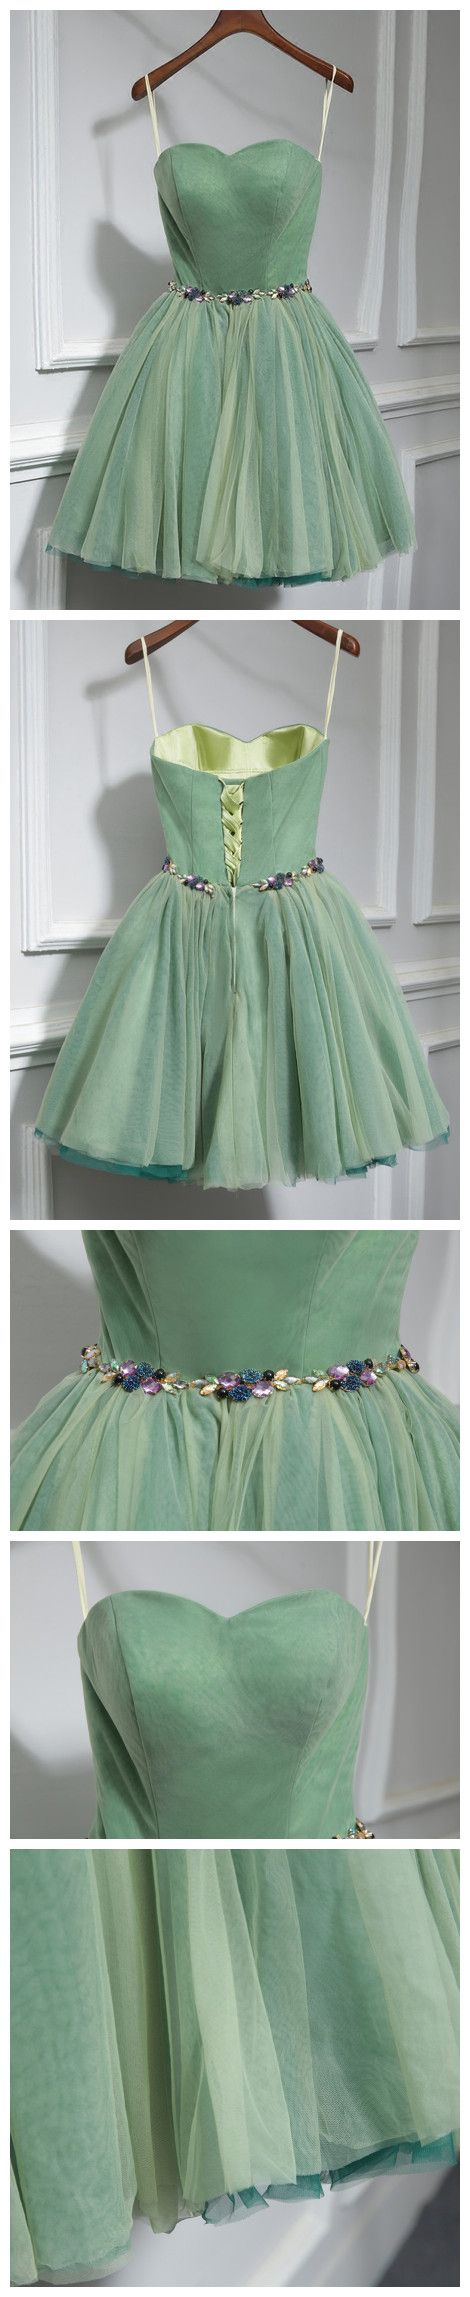 CHIC A-LINE SWEETHEART TULLE GREEN SIMPLE SHORT PROM DRESS HOMECOMING DRESS AM211